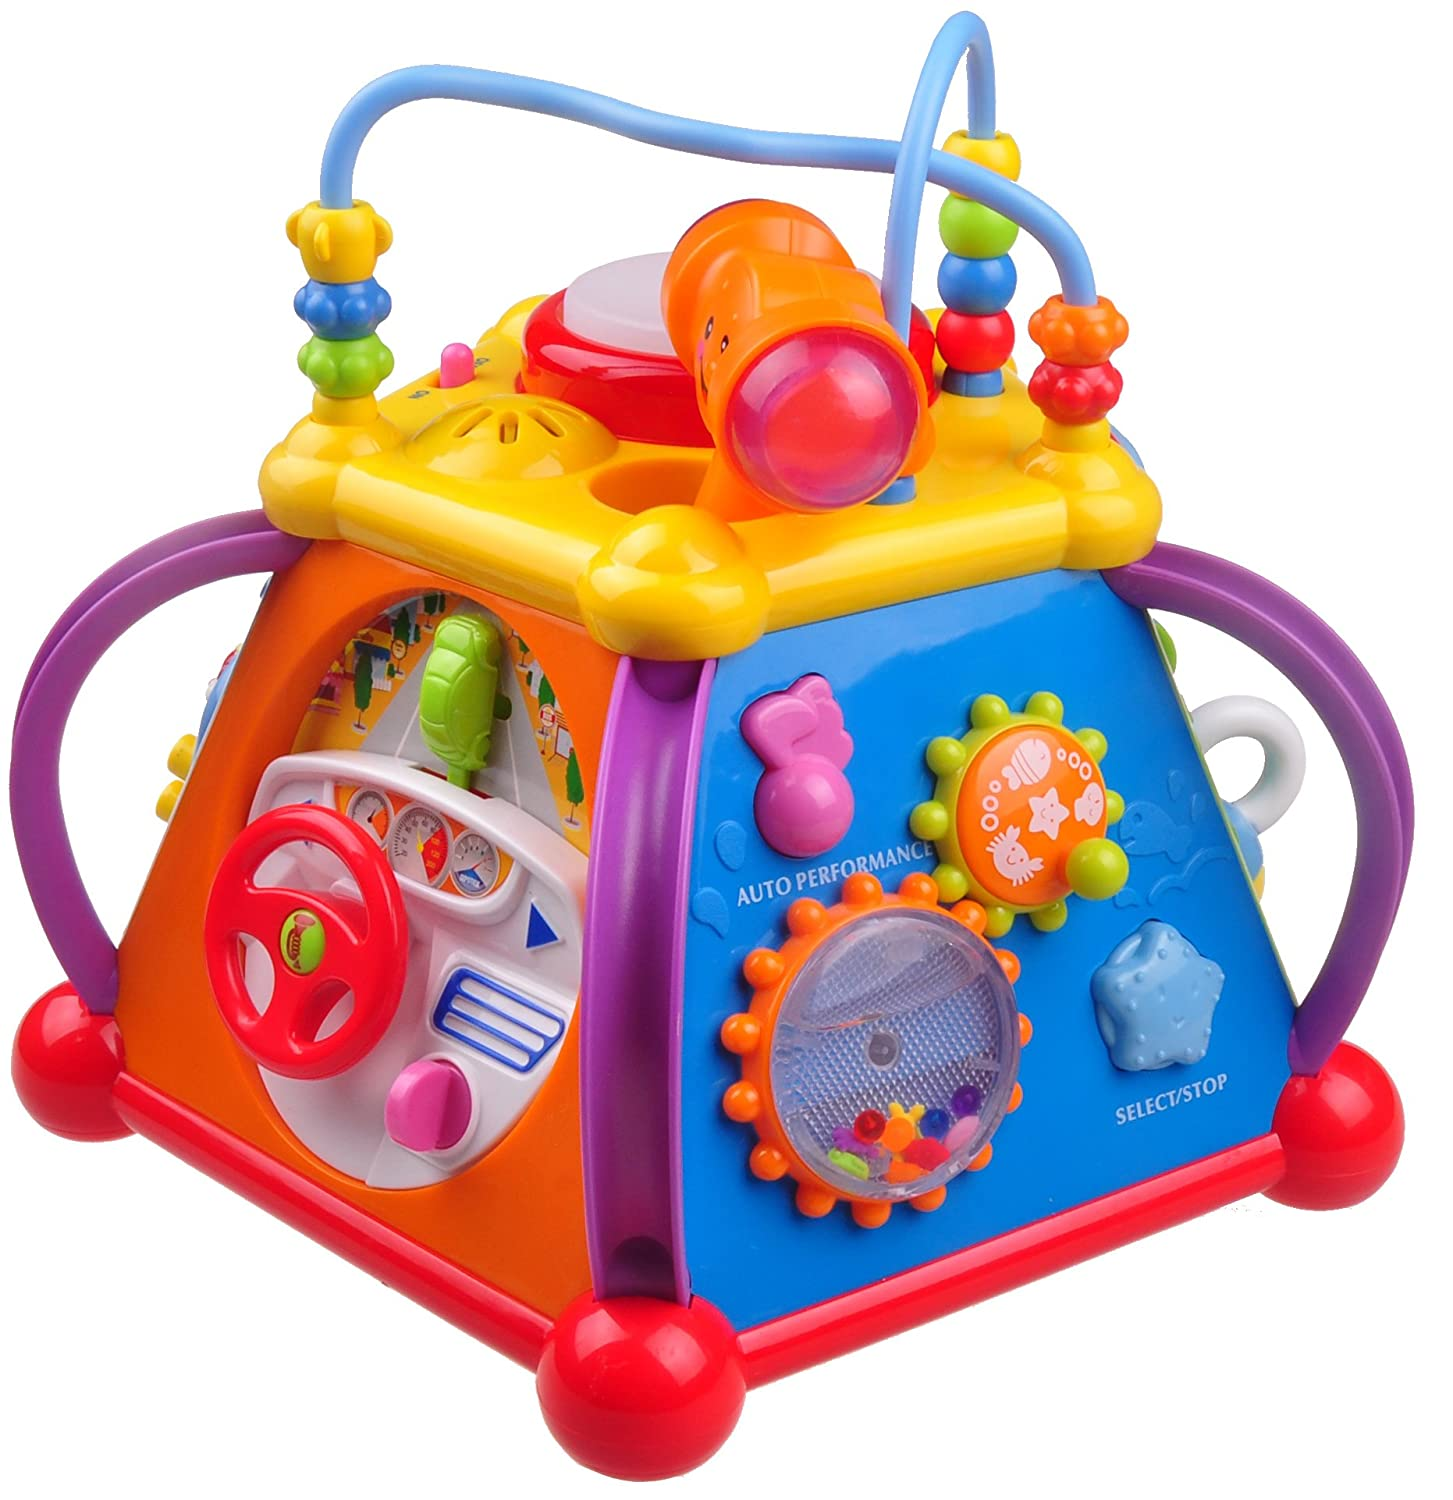 Think Gizmos Activity Toys for Toddlers Interactive Educational Toys for Young Kids Activity Centre